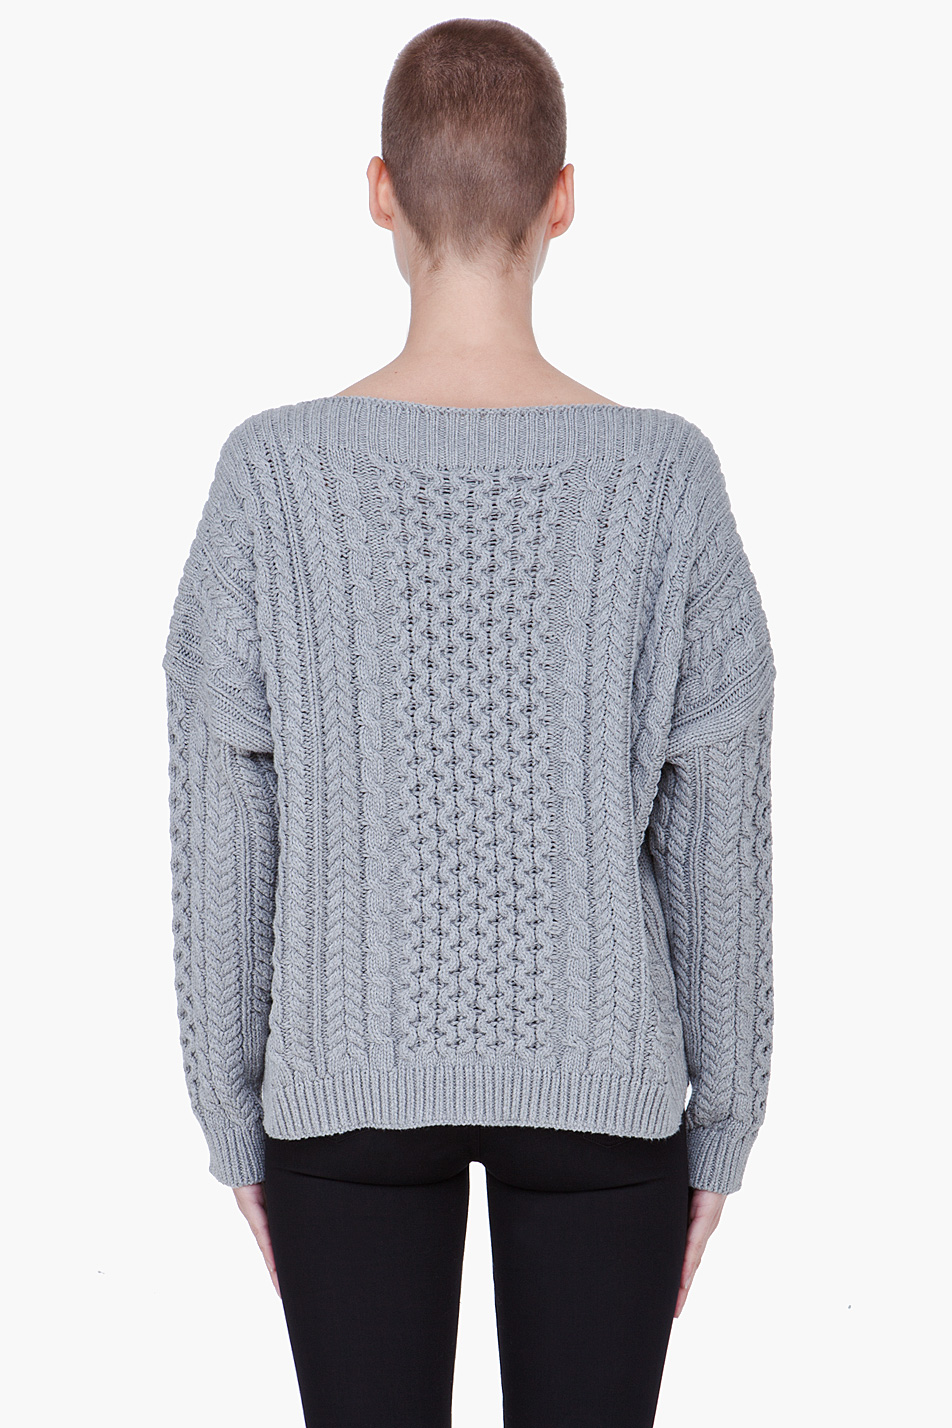 lyst marc by marc jacobs geraldine sweater in gray. Black Bedroom Furniture Sets. Home Design Ideas